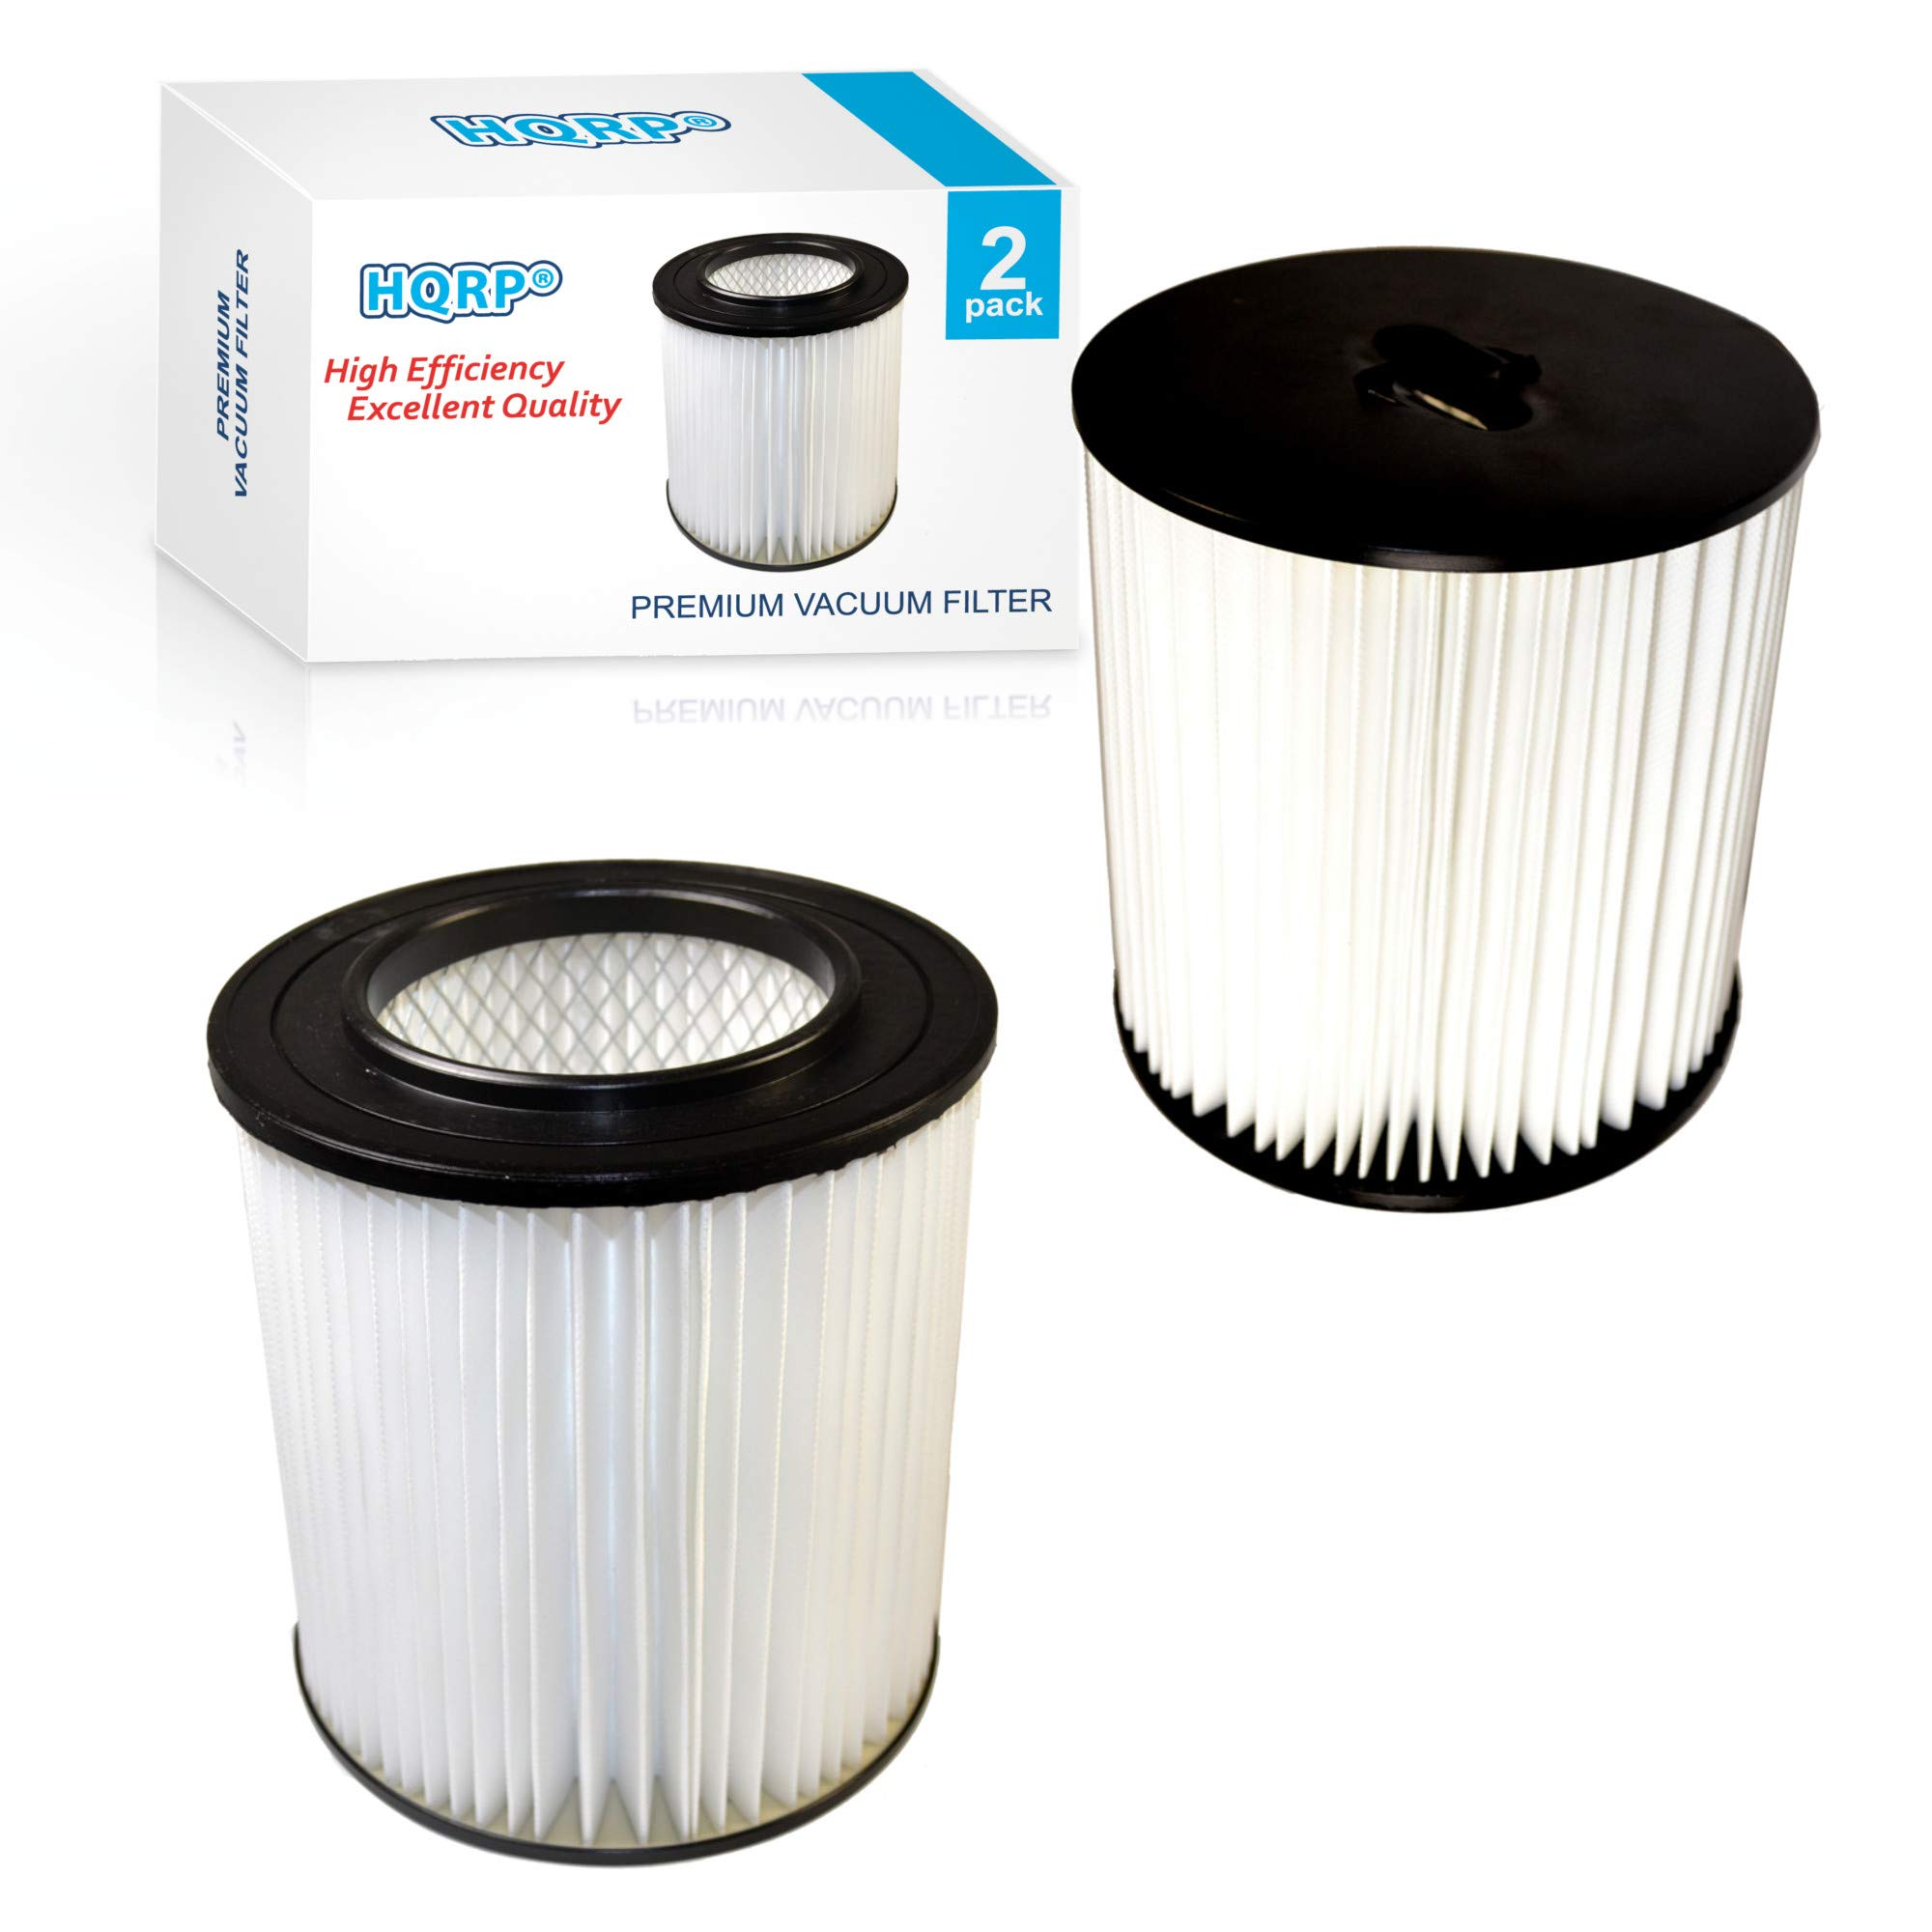 HQRP 2-Pack 7'' Filter Compatible with VACUFLO FC300, FC550, FC650, FC310, FC520, FC530, FC540, FC610, FC620, FC670 H-P Central Vacuum Systems, 8106-01 Replacement by HQRP